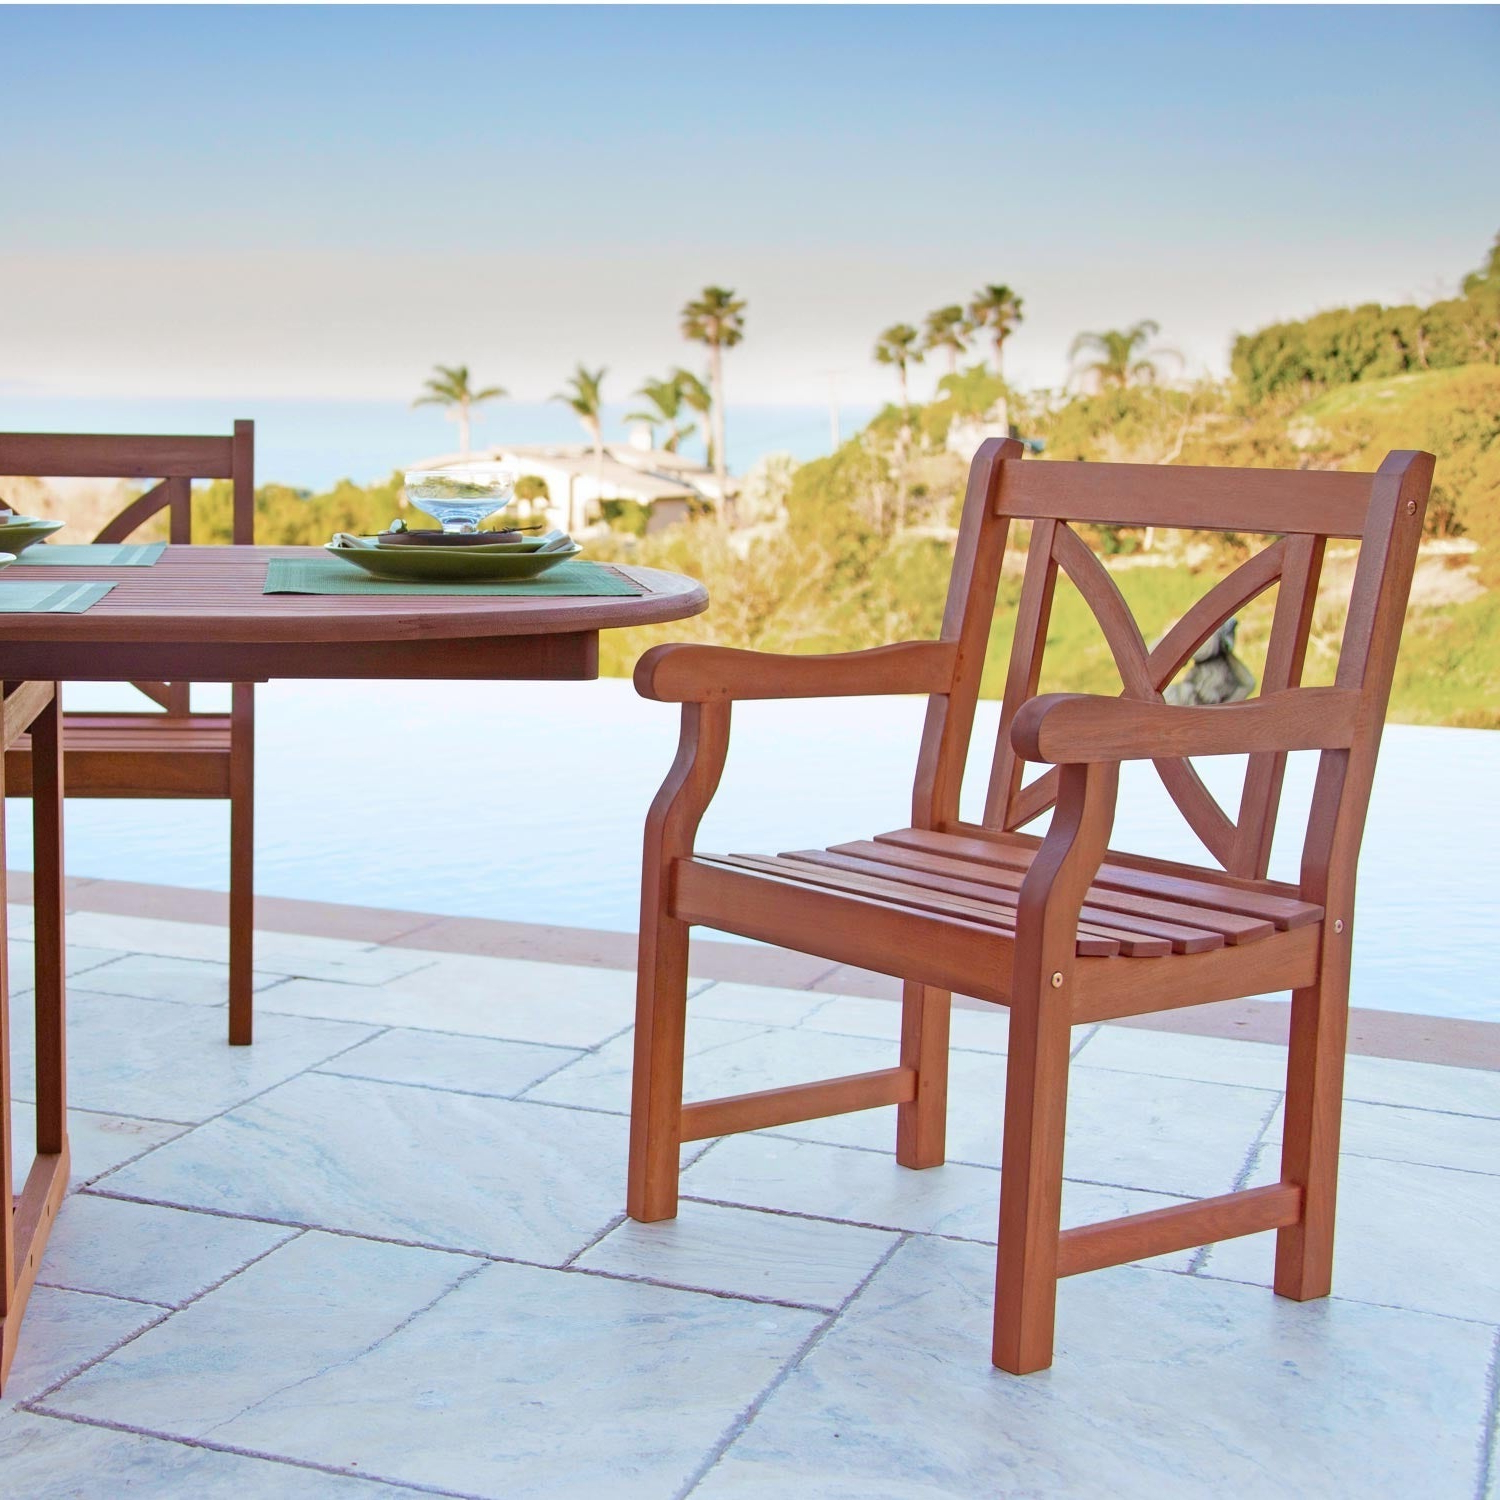 Widely Used Havenside Home Surfside Arm Chair Within Havenside Home Surfside Outdoor Lounge Chairs (View 6 of 25)